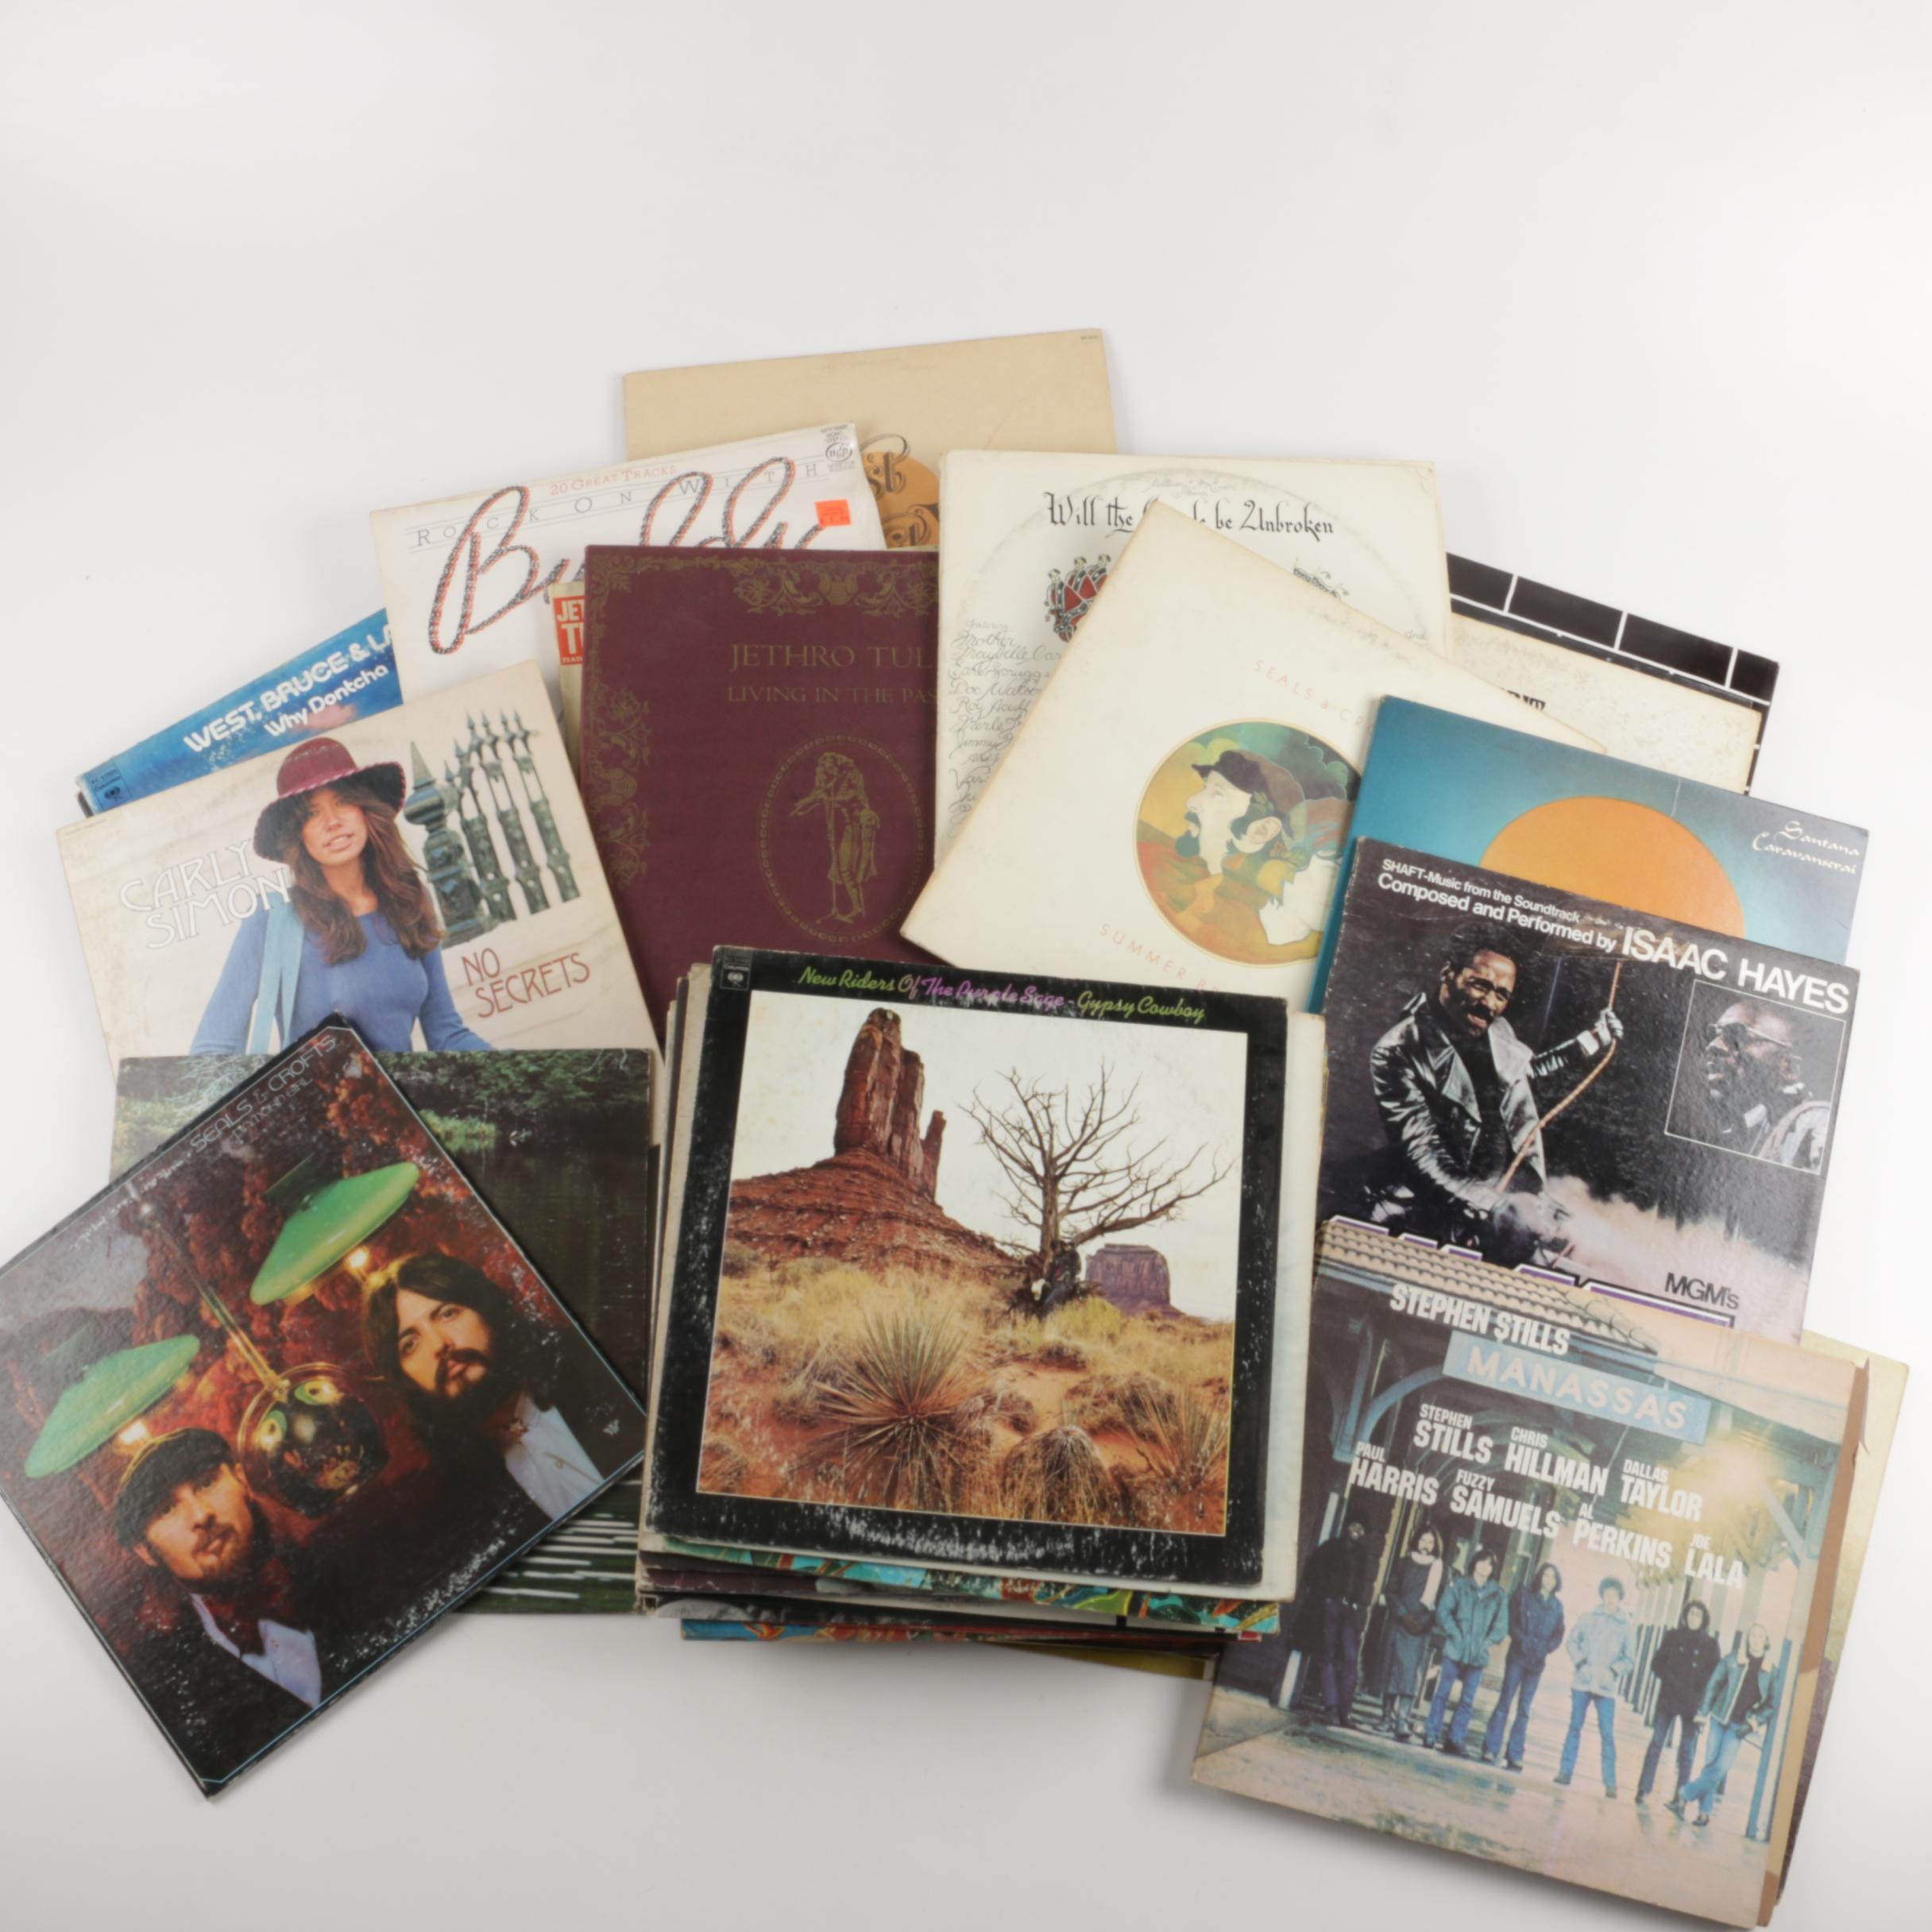 Hendrix, Grateful Dead, George Harrison, Other Classic Rock LPs